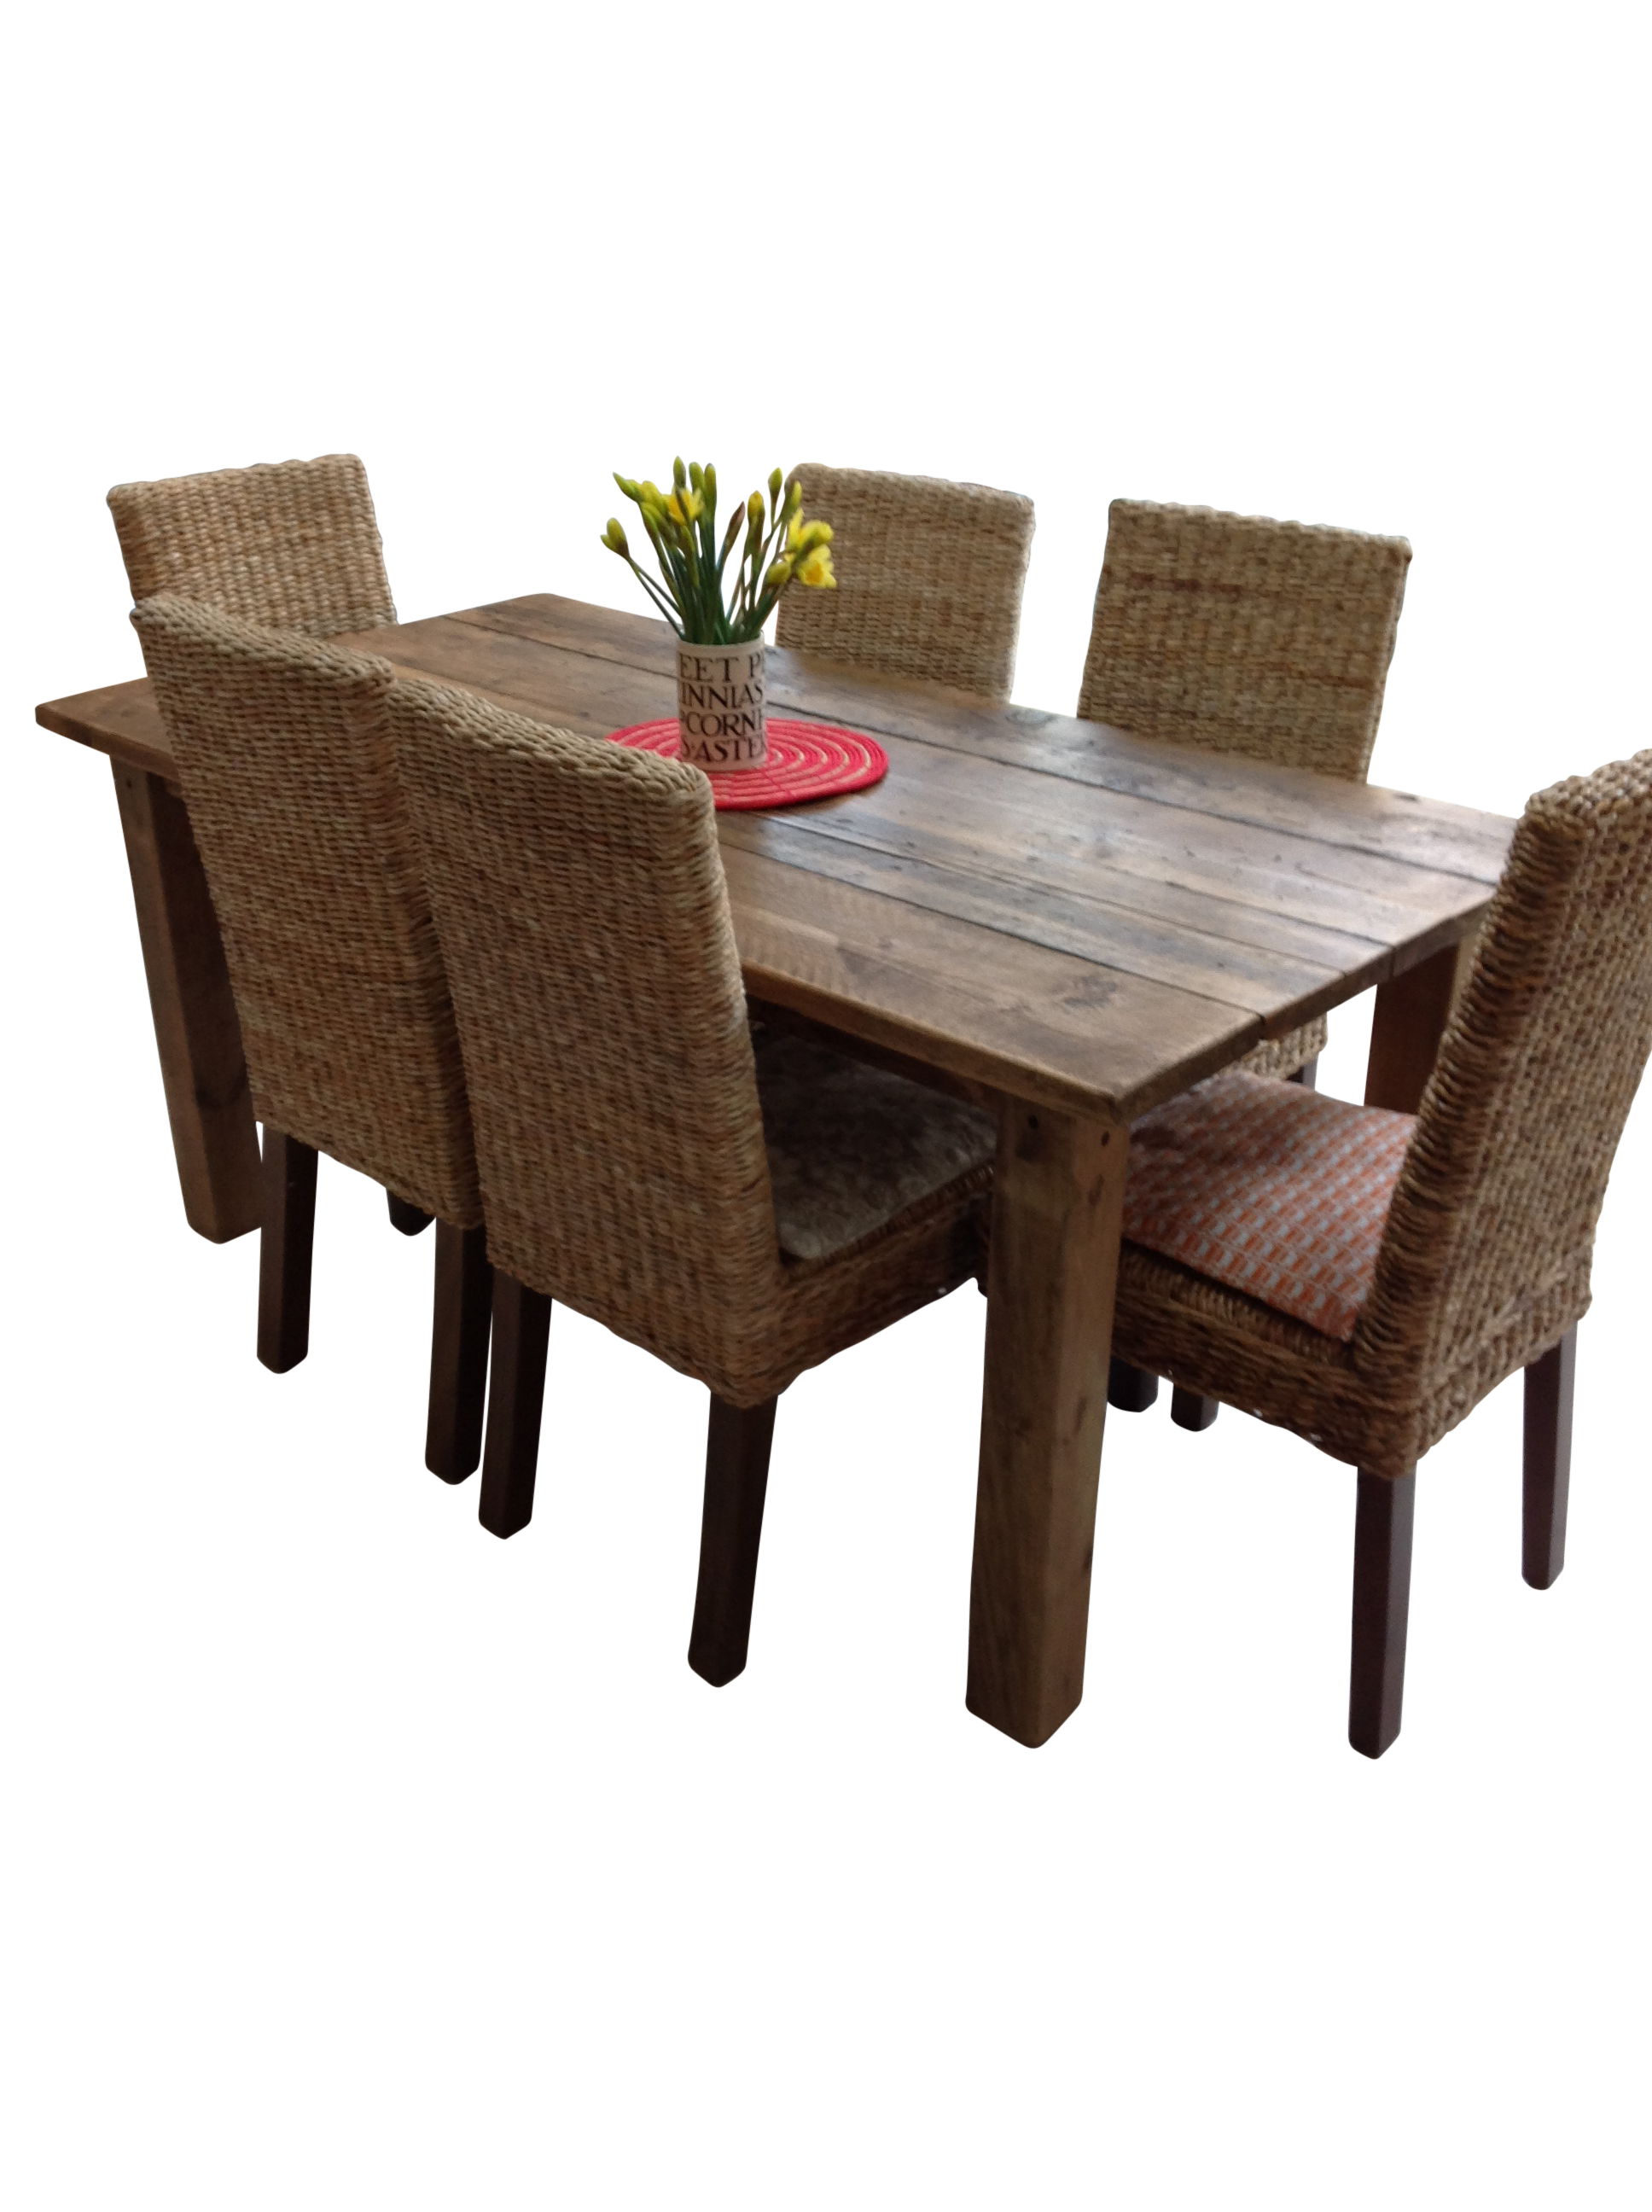 The Rustic Dining Table